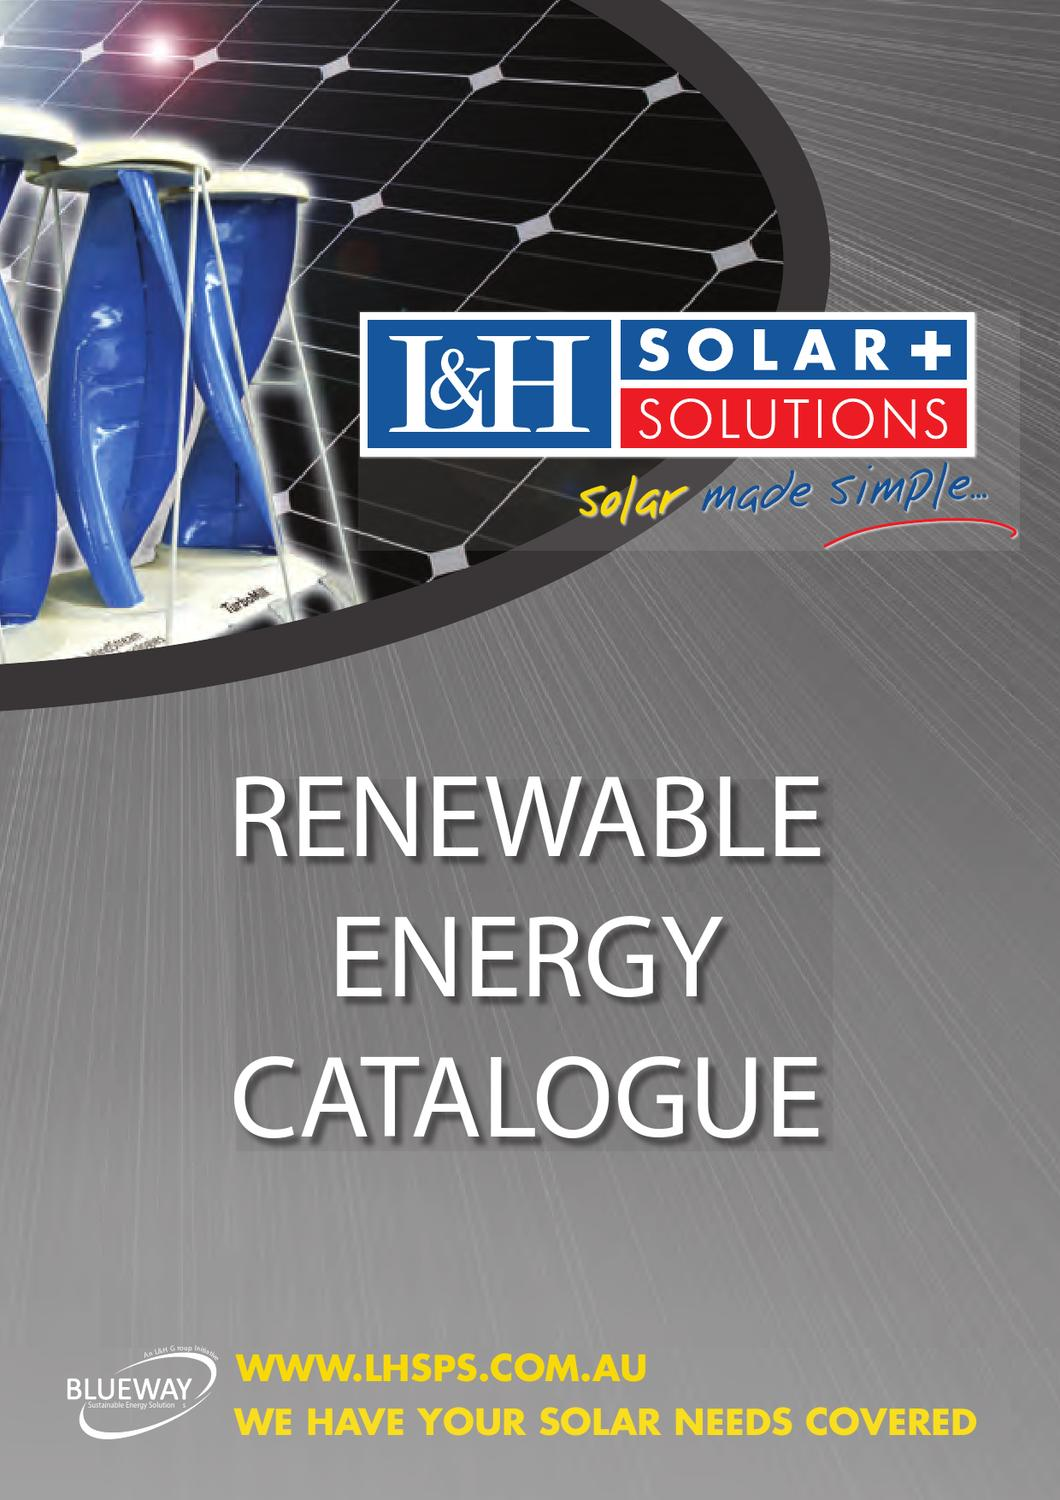 Lh Solar Catalogue By Chris Bright Issuu Surface Mounted Box And Wiring 1407 Chase